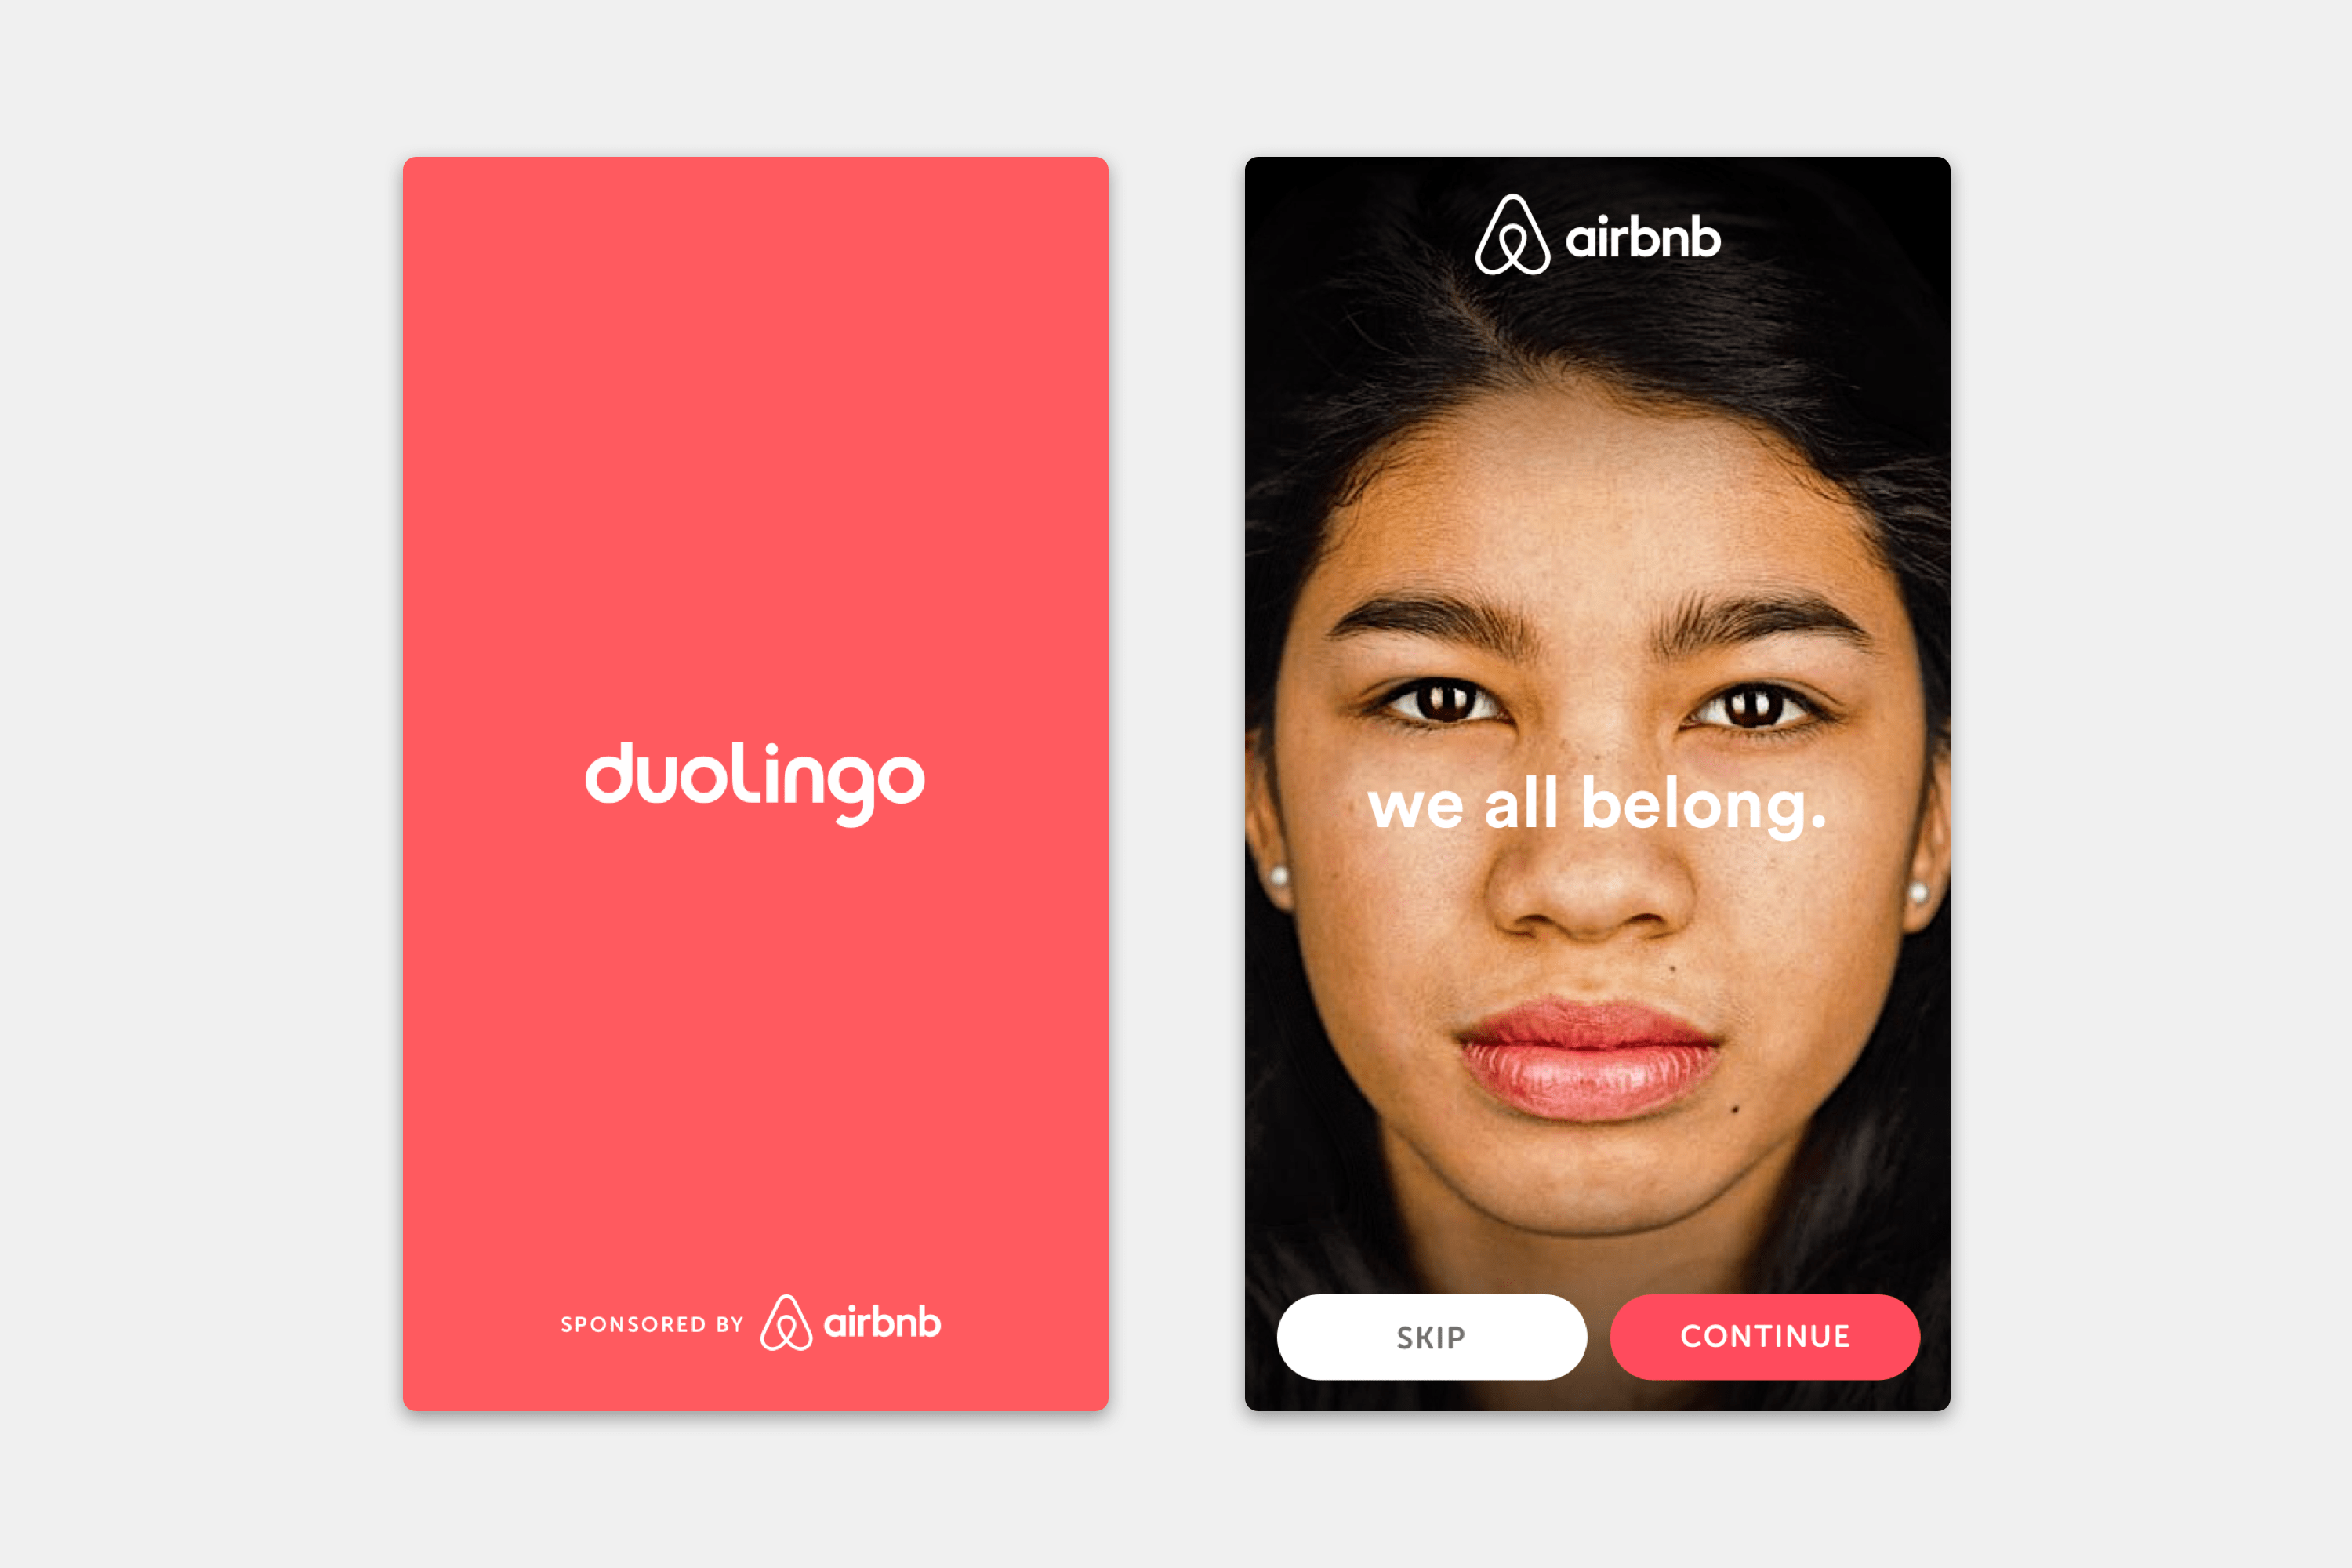 Duolingo Sponsorships - Airbnb Advertisement